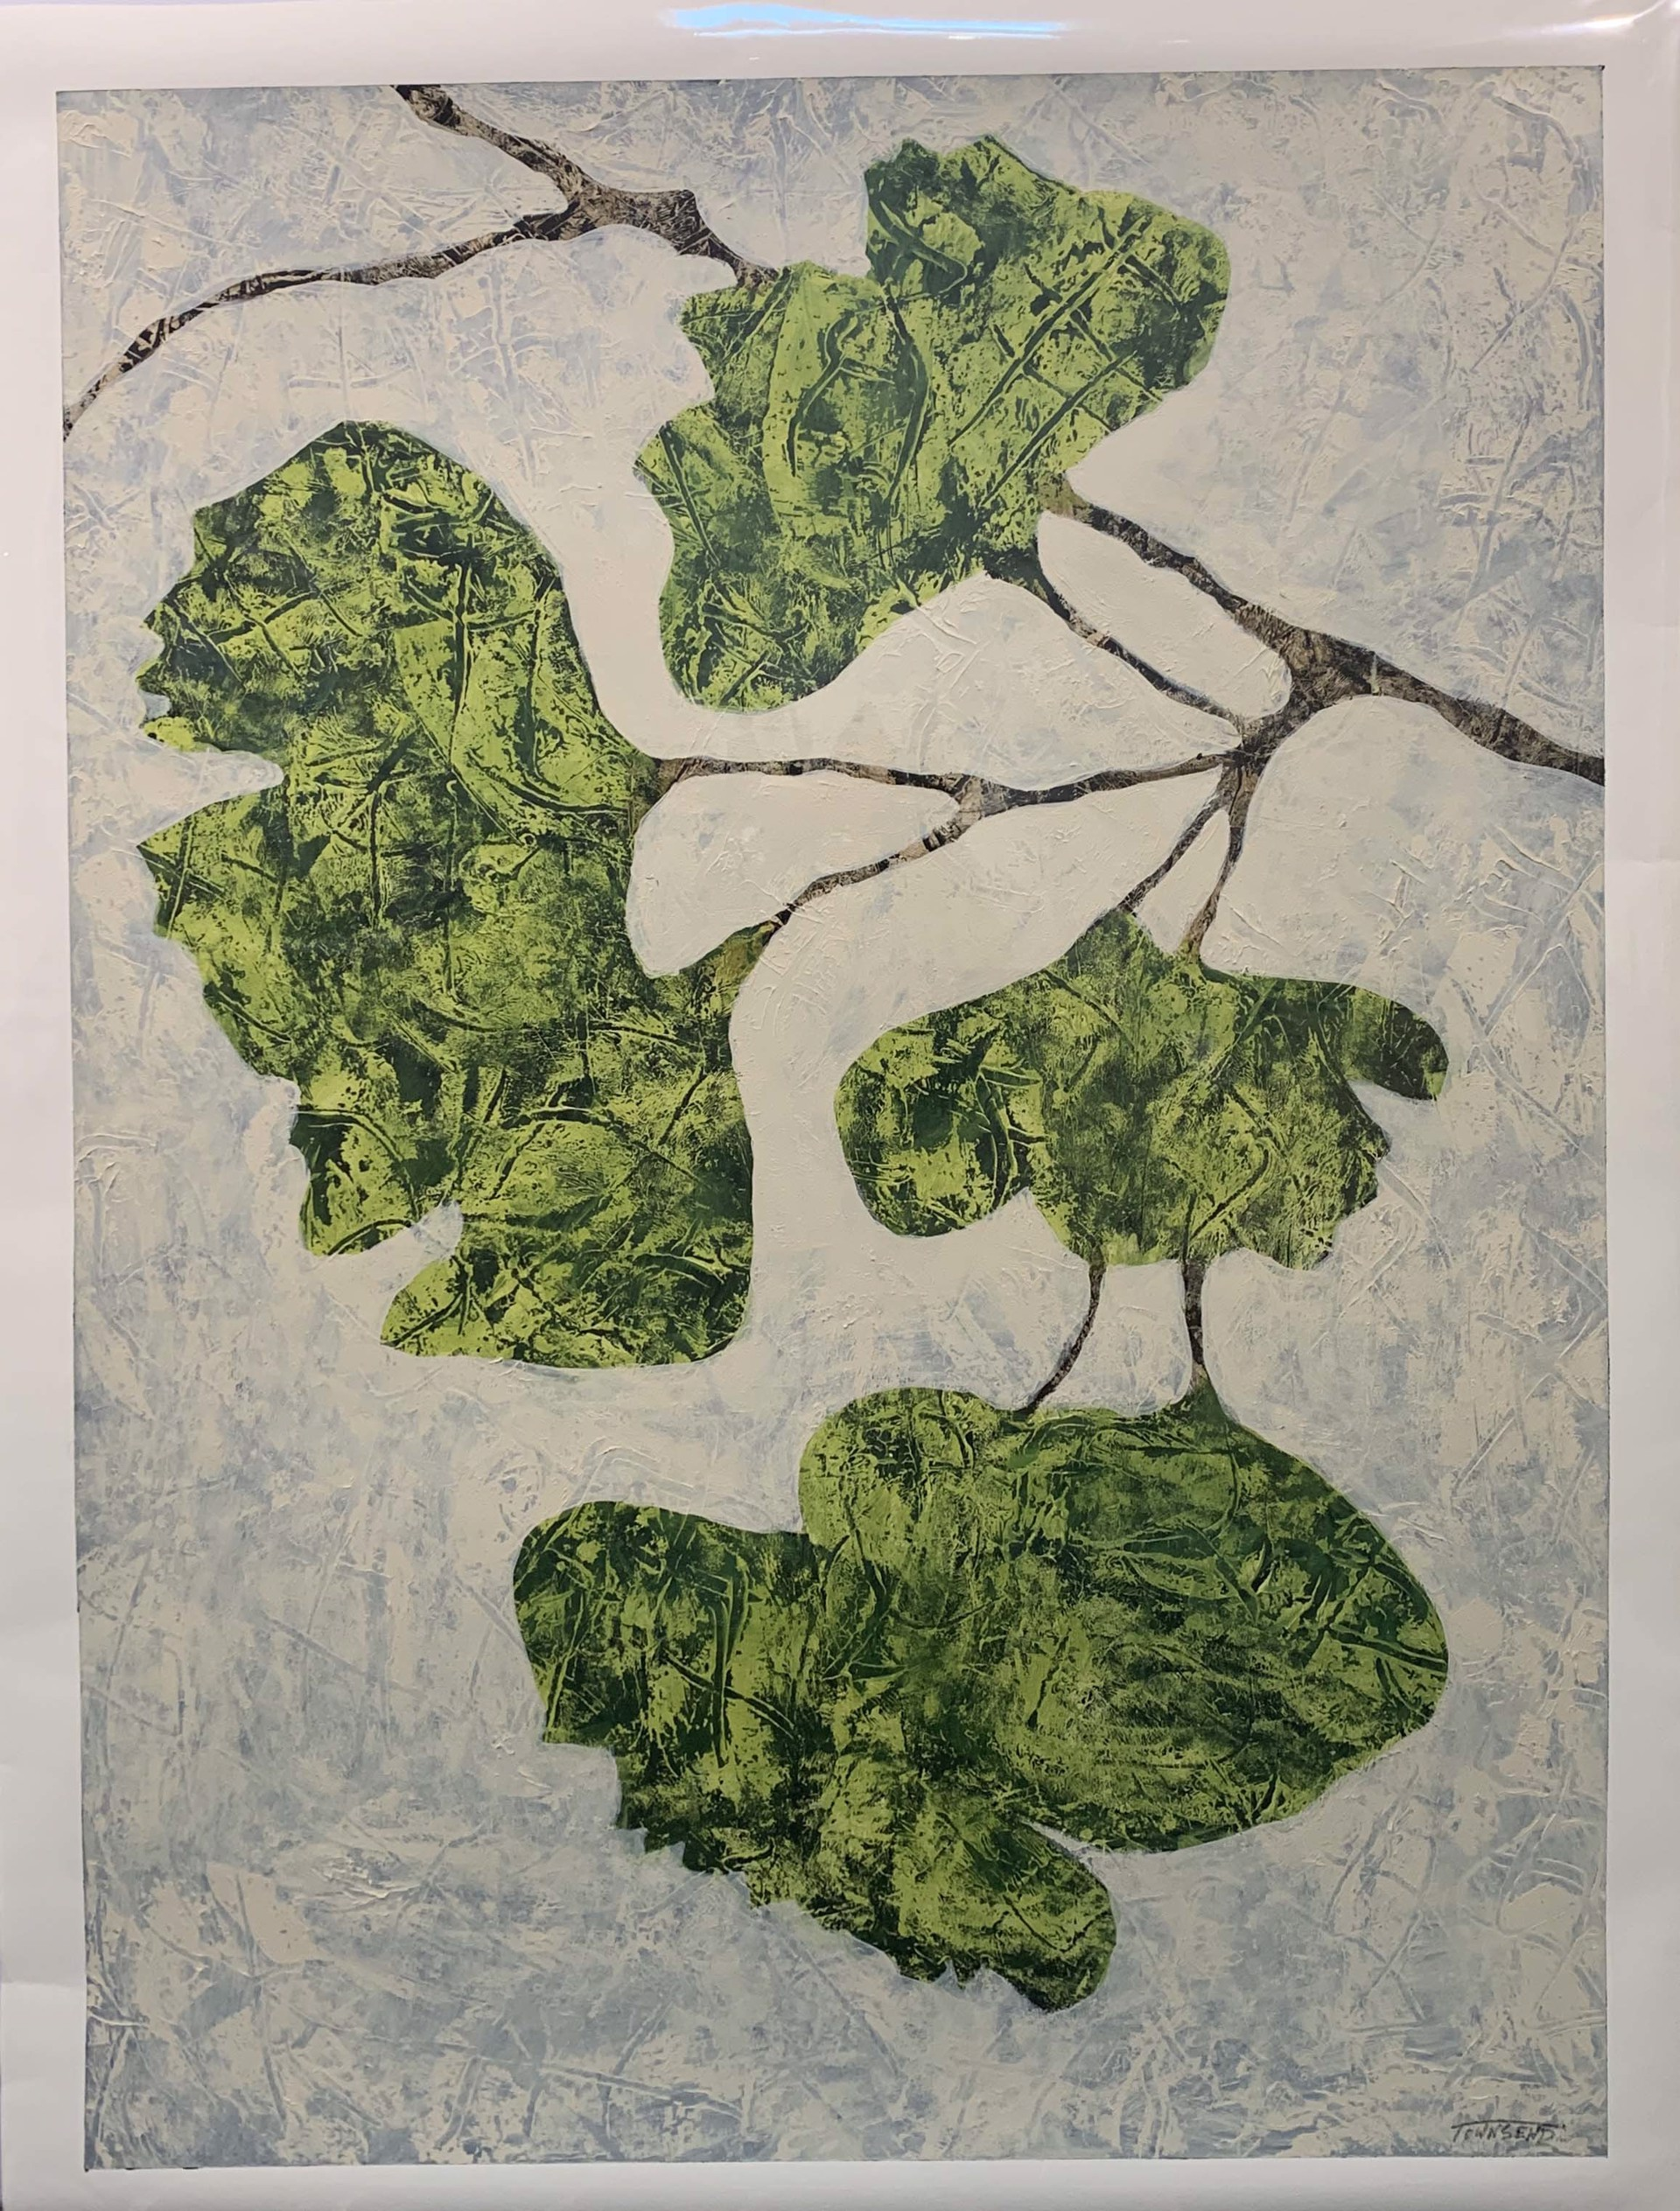 Ginkgo Leaves by John Townsend